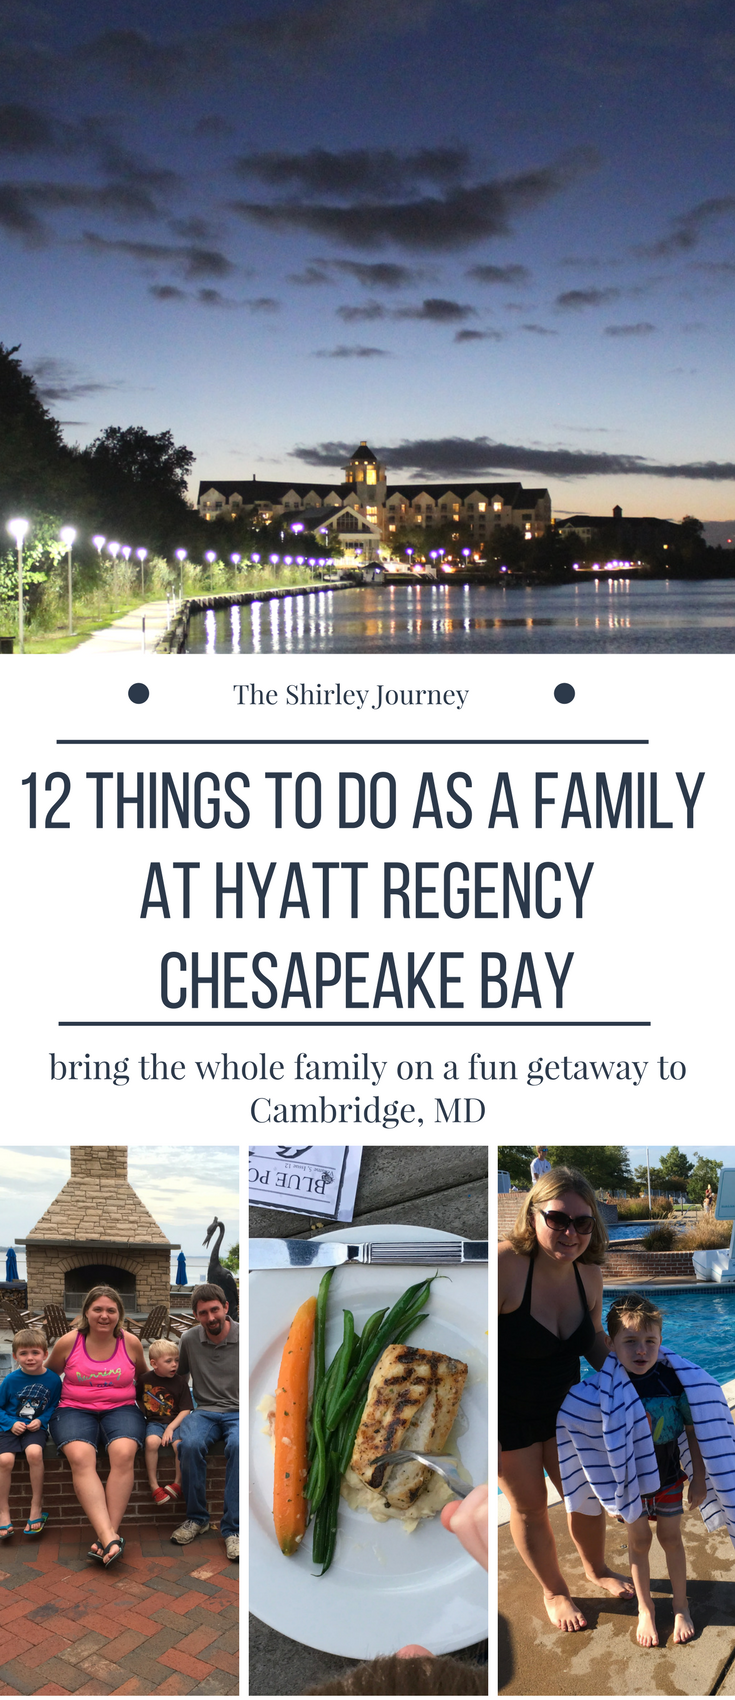 Bring the whole family for a fun getaway to Hyatt Regency Chesapeake Bay in beautiful Cambridge, MD.